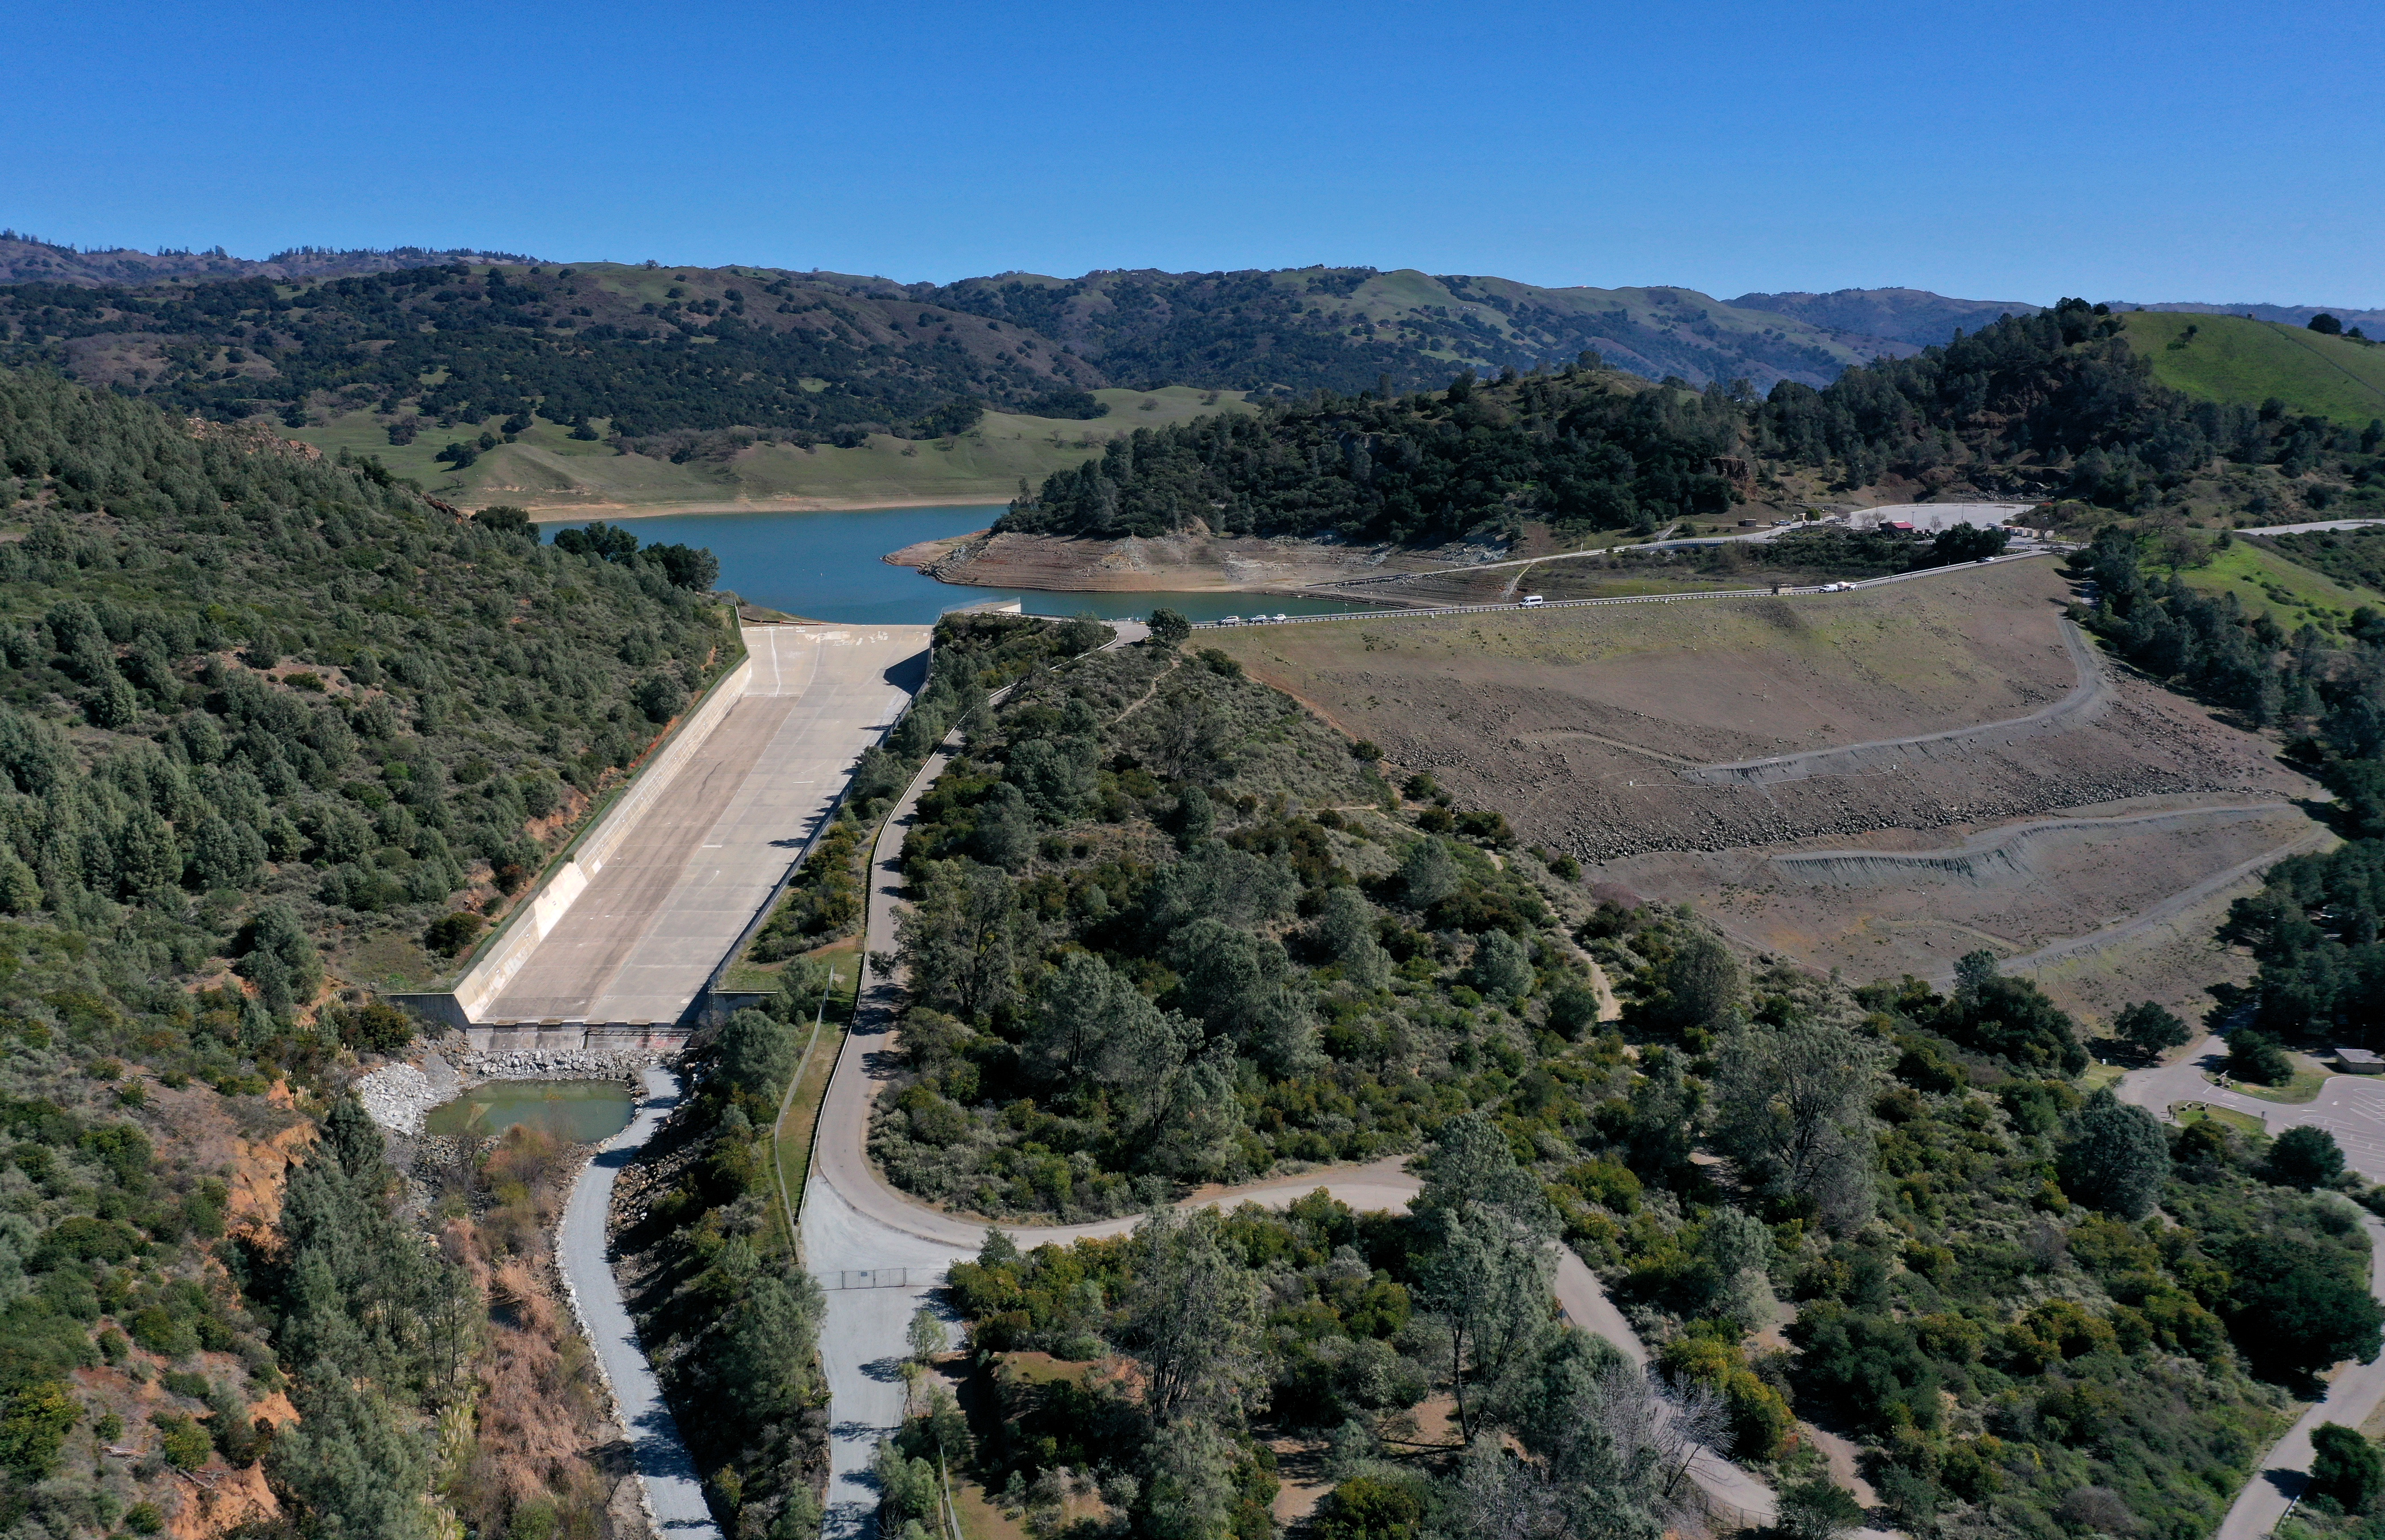 A view of the dam at Anderson Reservoir, an earthen dam with a placid looking lake behind it and a tree-lined hillside in front.